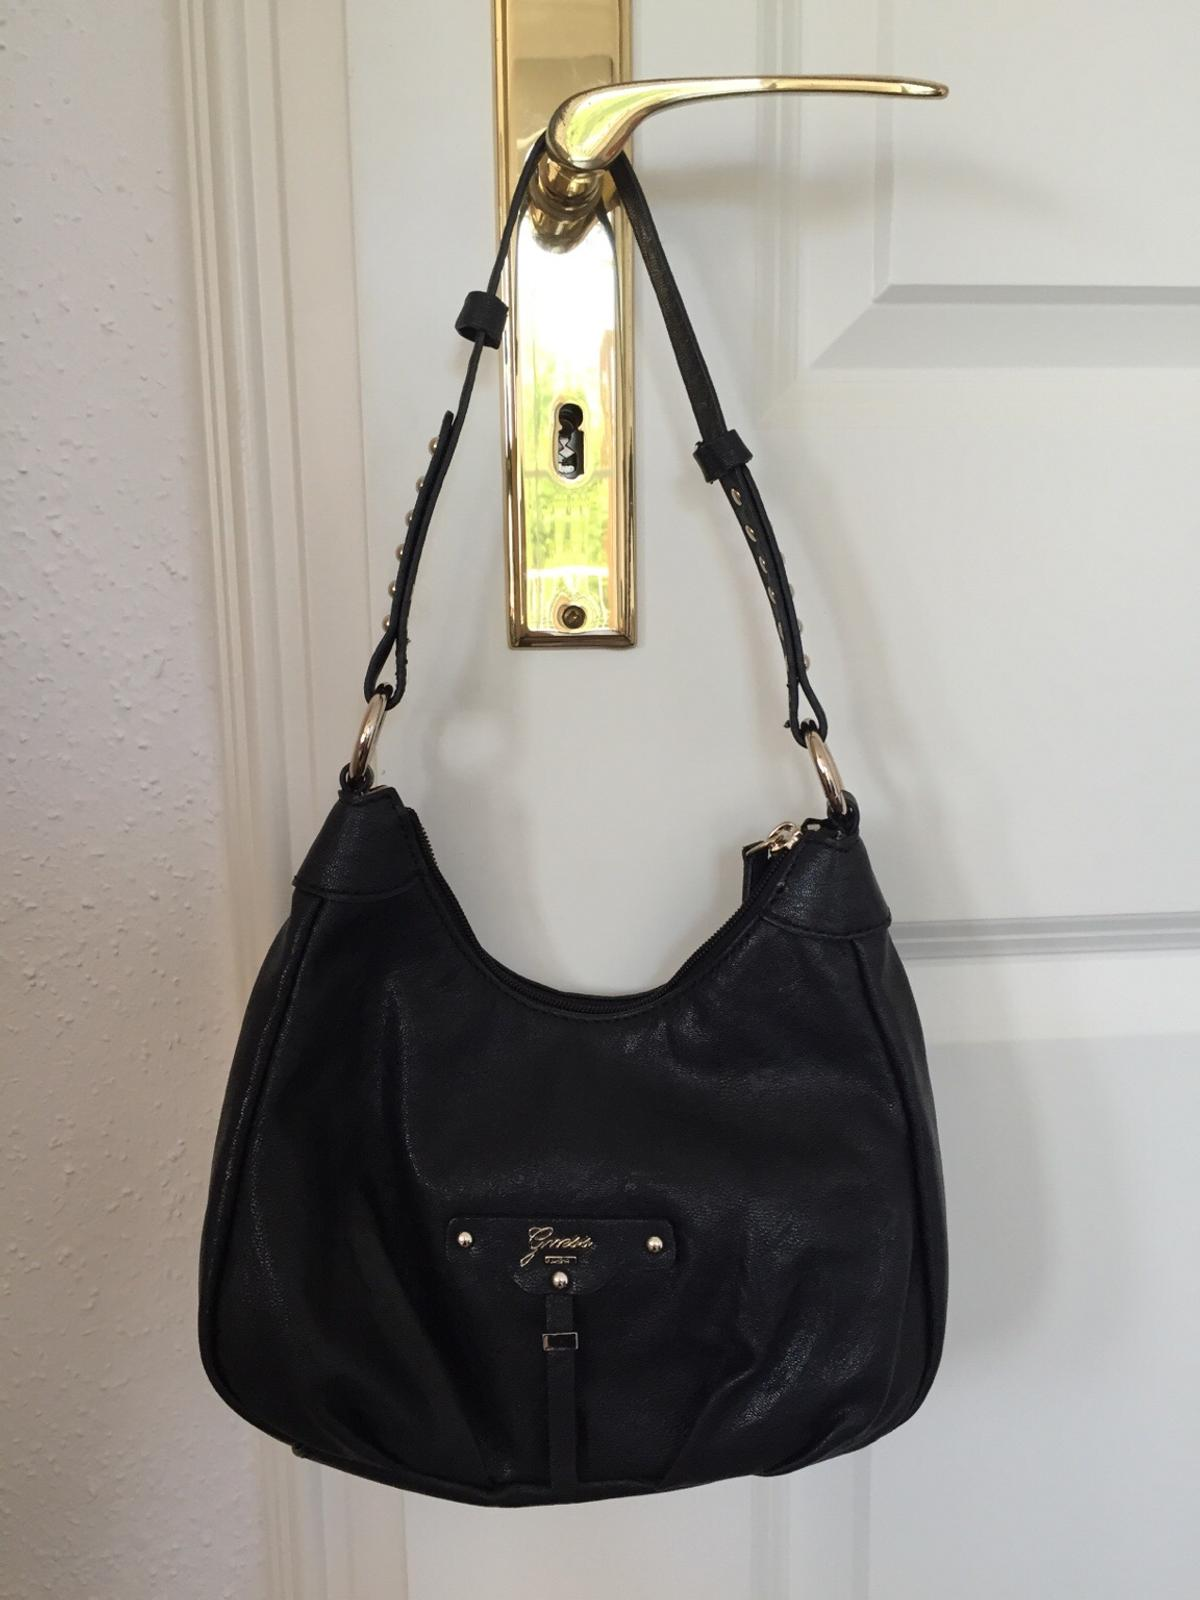 8c5007f51cb49 In Tasche €20 00 Schwarz Maierhof Guess Shpock For 4971 Sale Y7by6fg